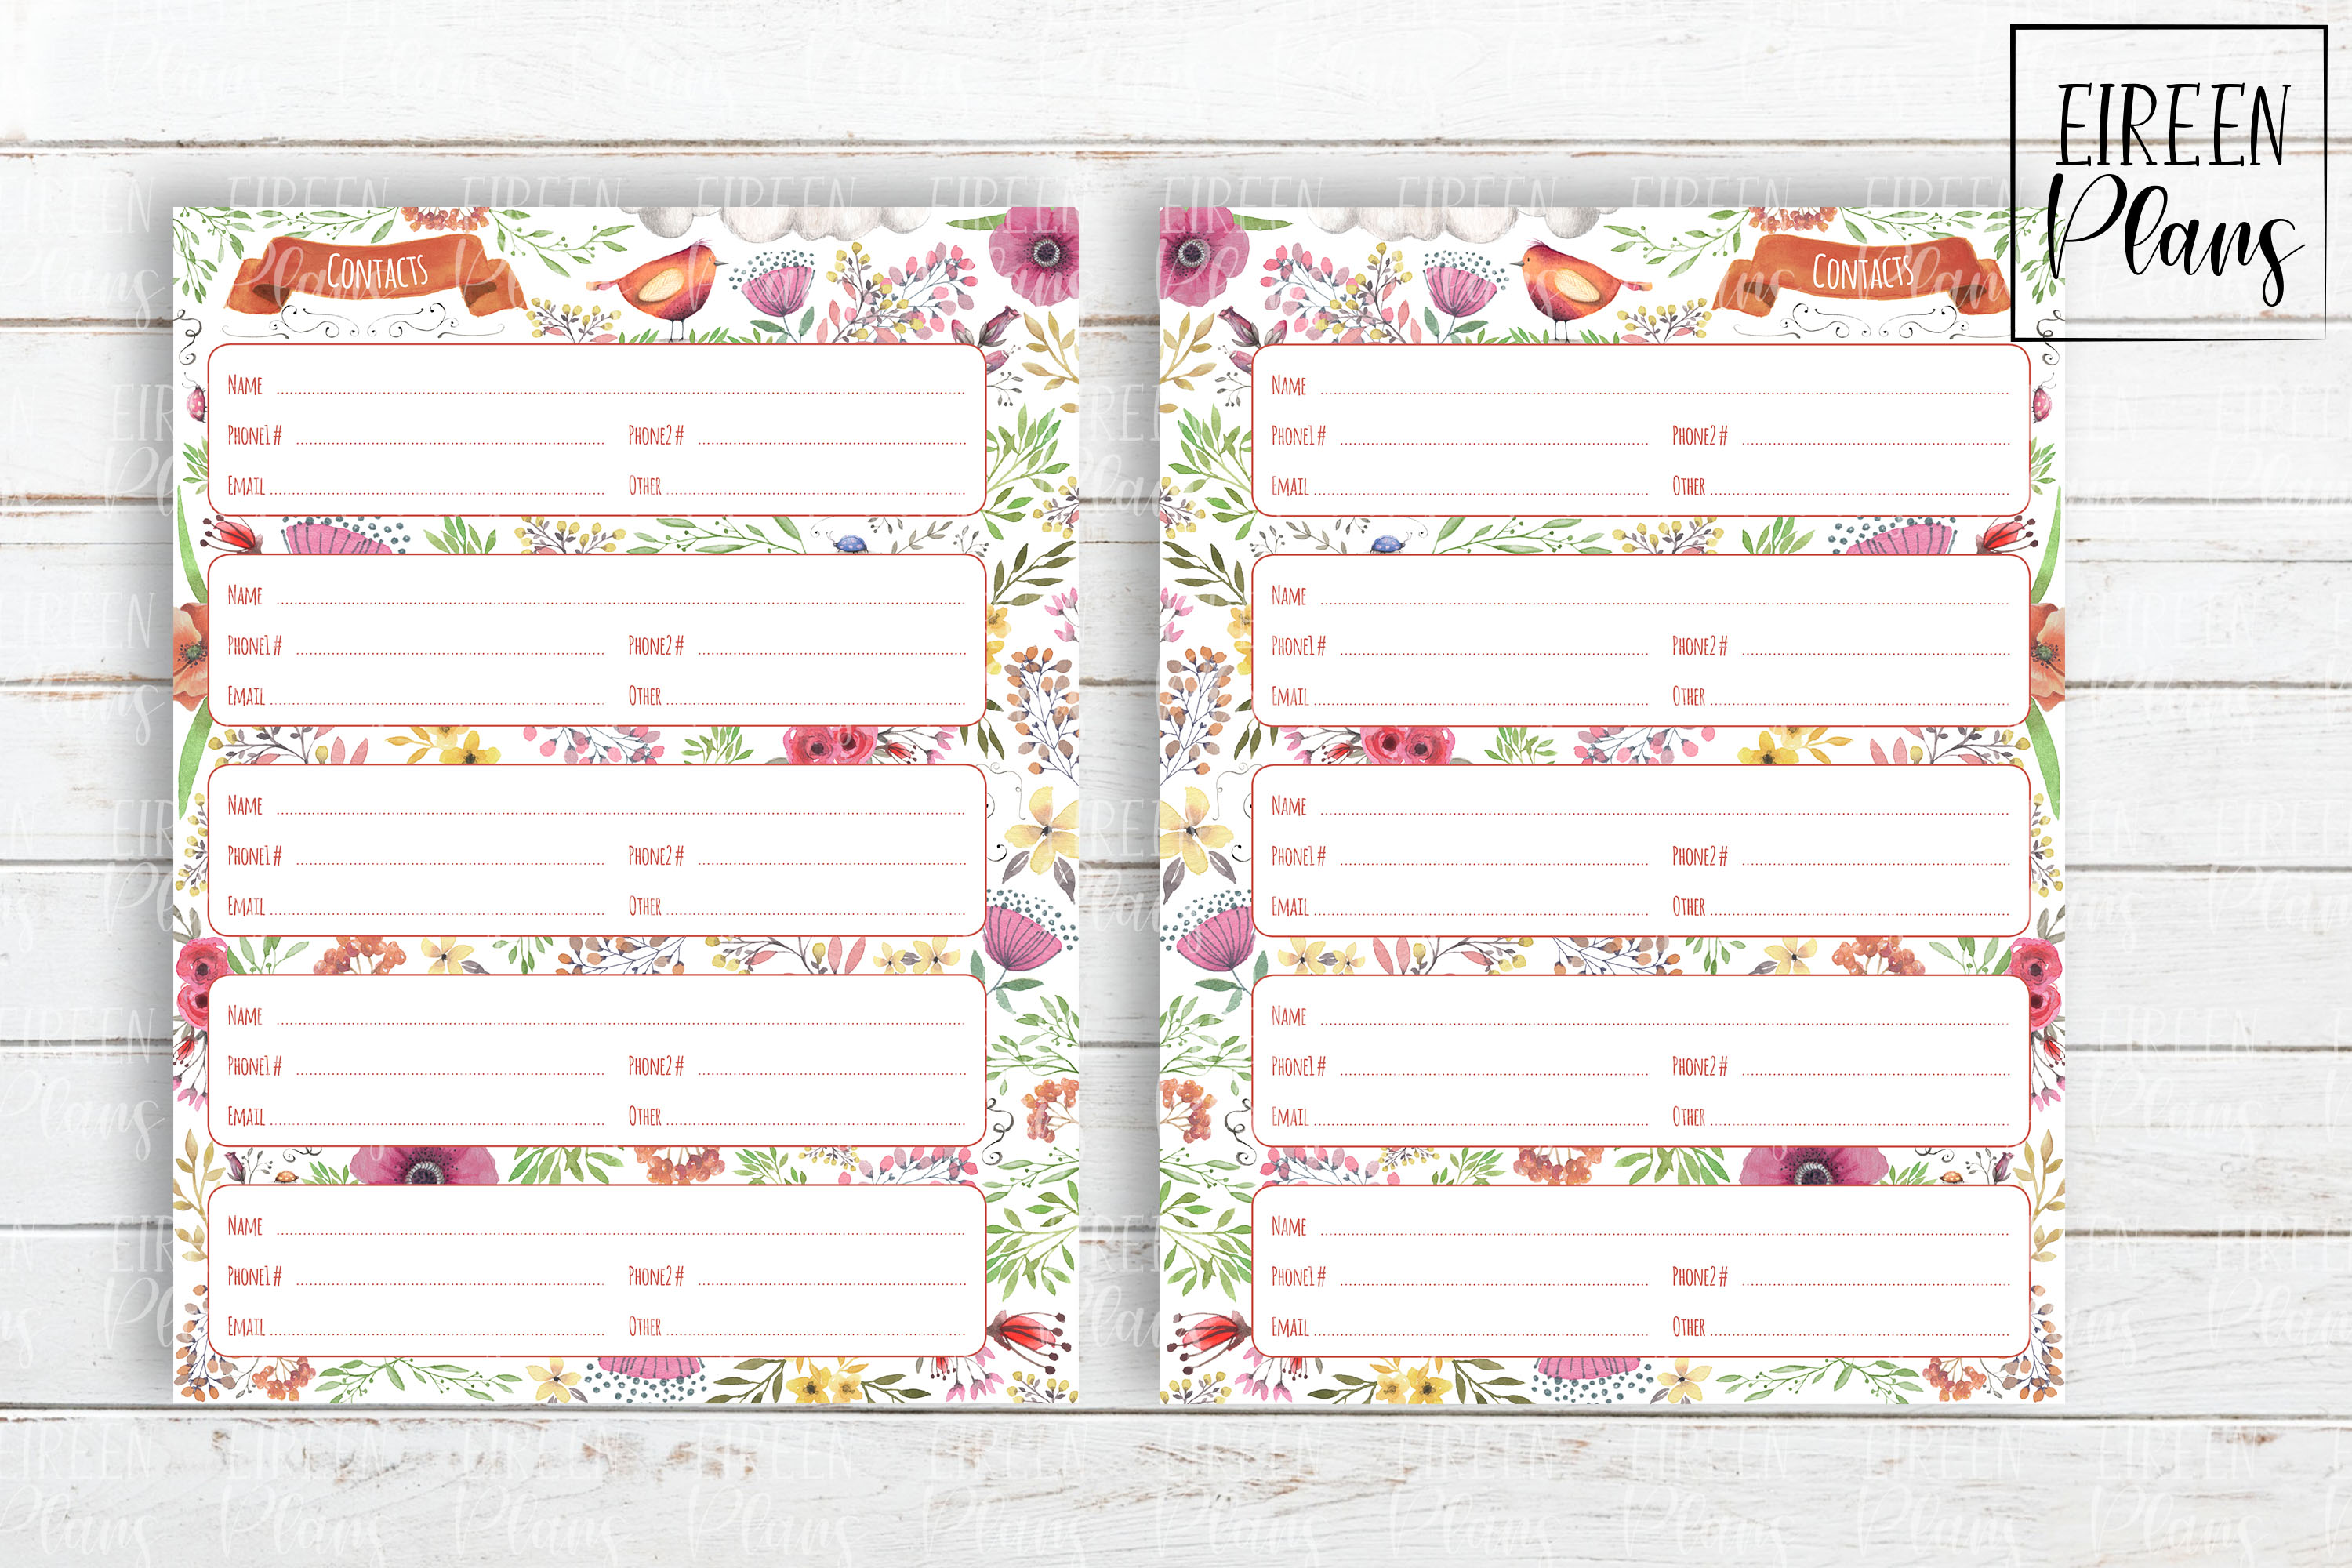 Contacts printable for Classic Happy Planner example image 2